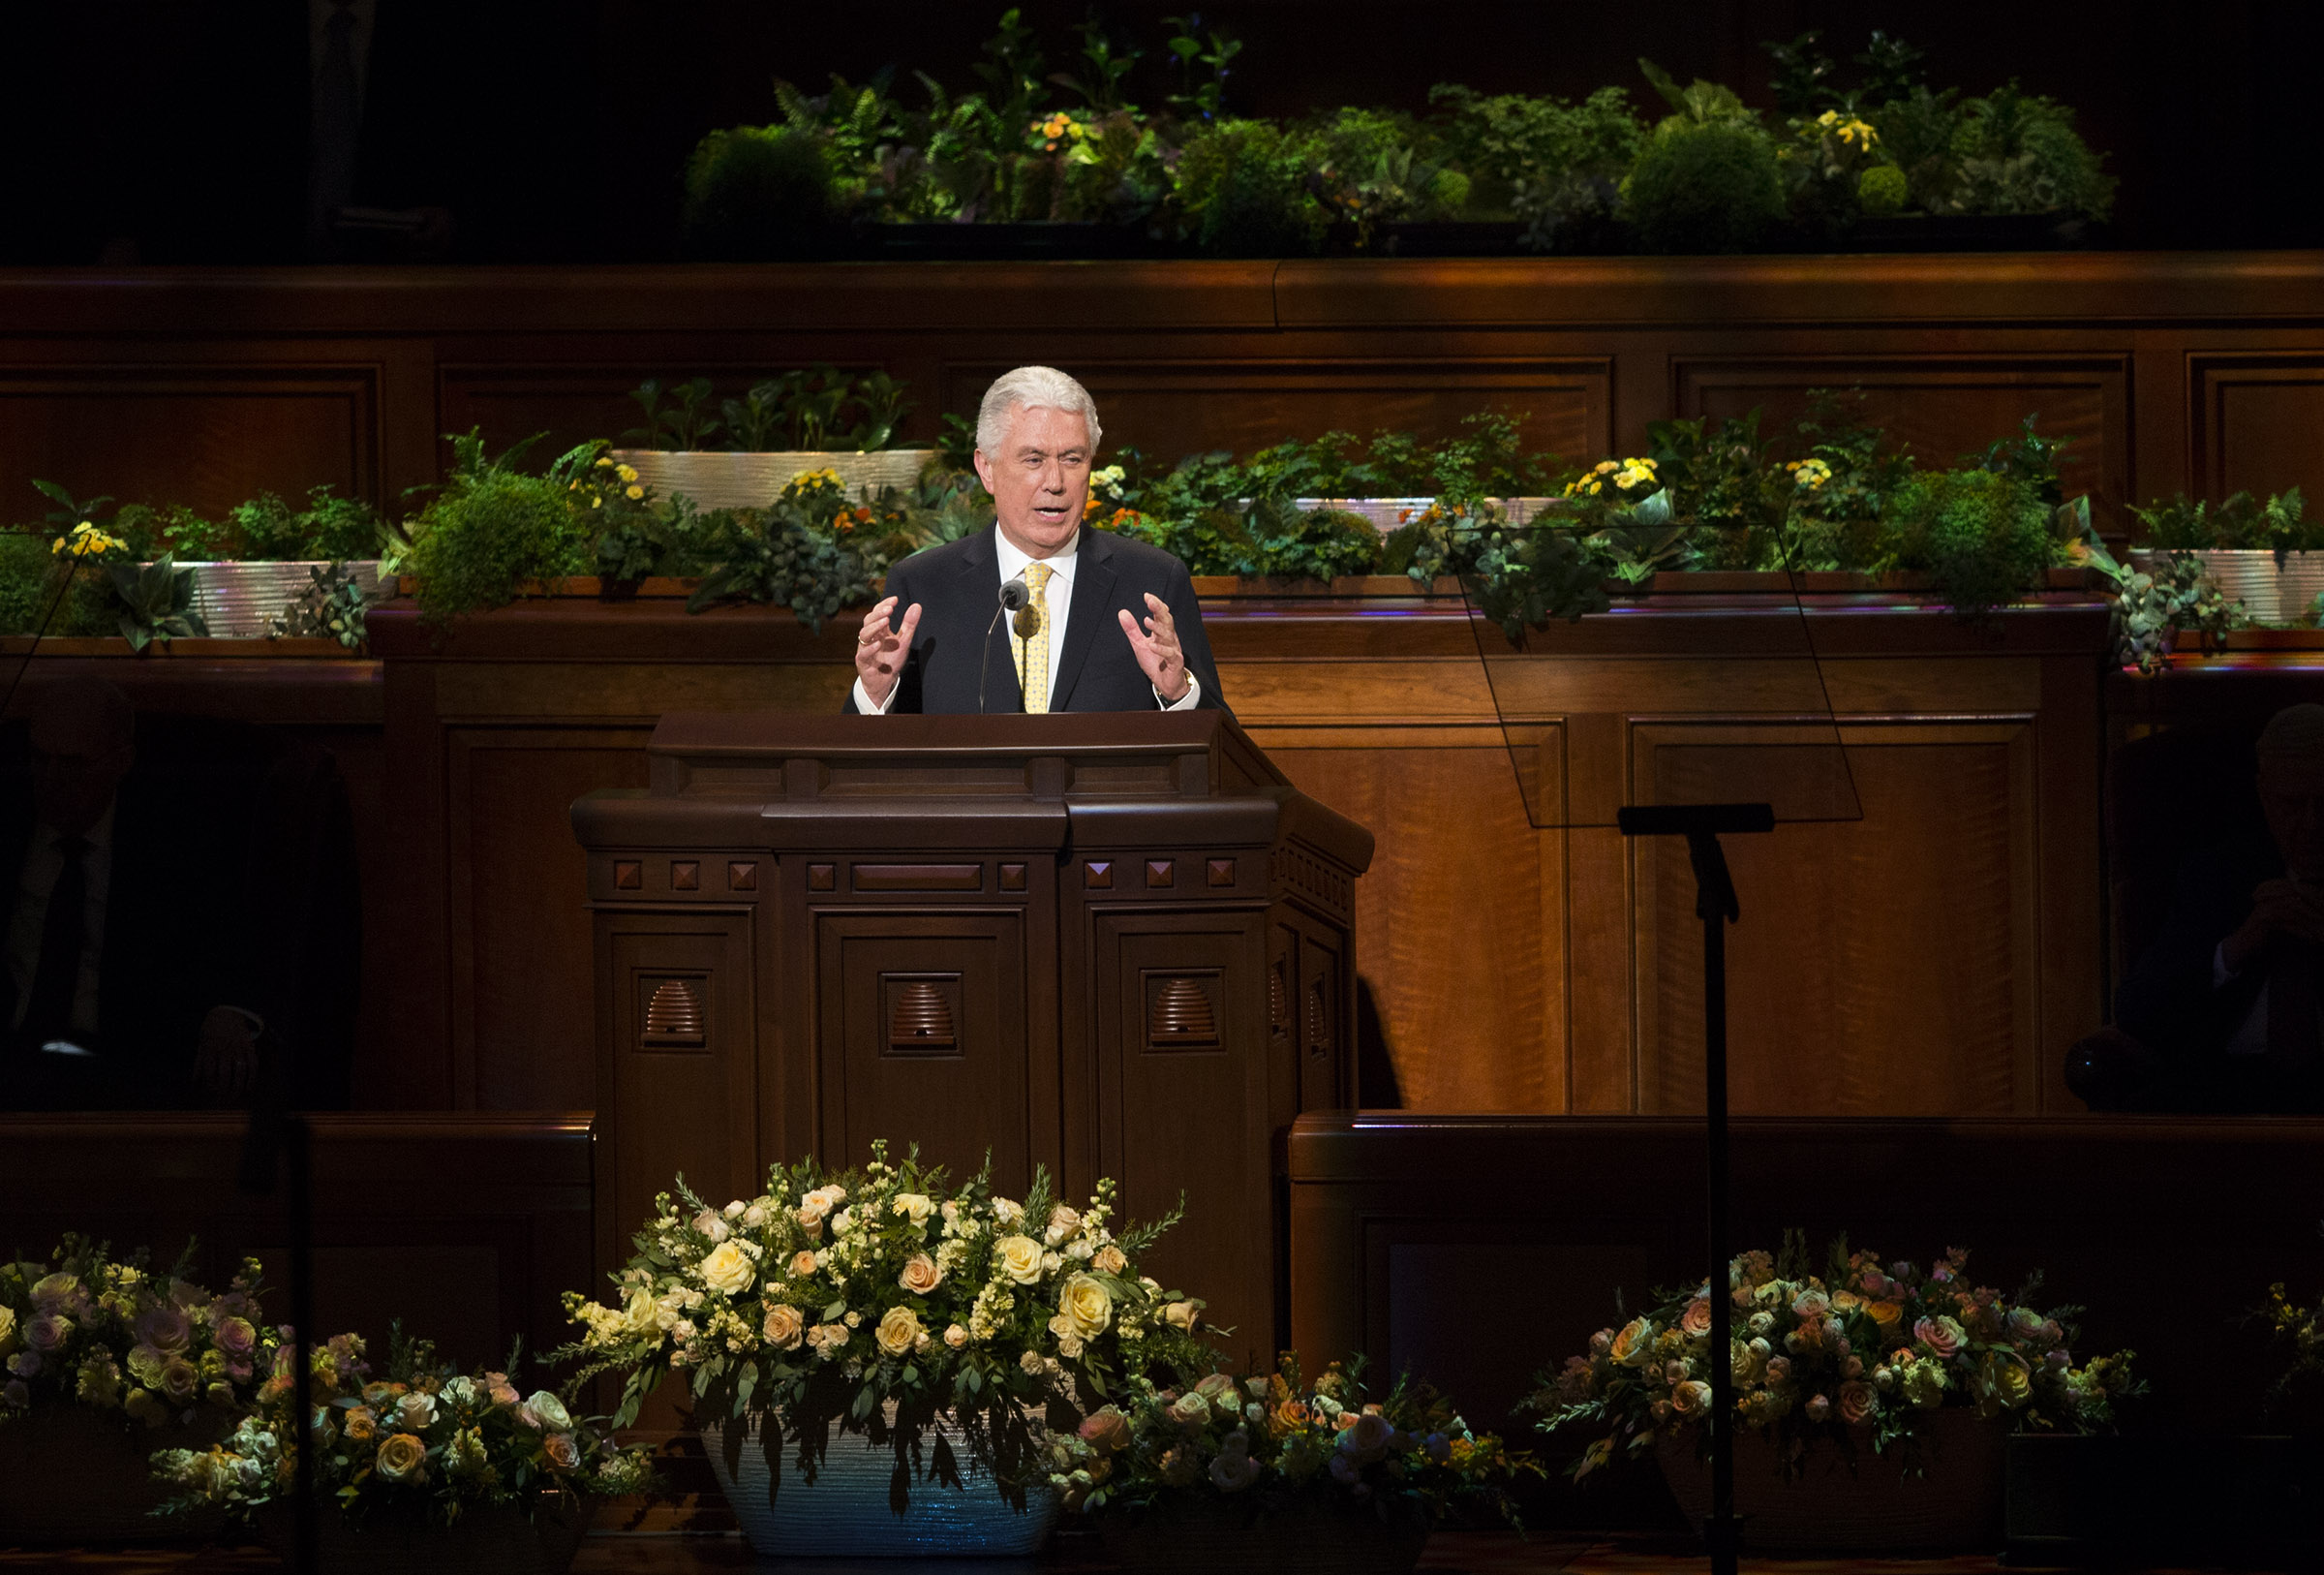 Elder Dieter F. Uchtdorf of the Quorum of the Twelve Apostles speaks during the Sunday afternoon session of the 188th Annual General Conference of The Church of Jesus Christ of Latter-day Saints, in the Conference Center in Salt Lake City on Sunday, April 1, 2018.